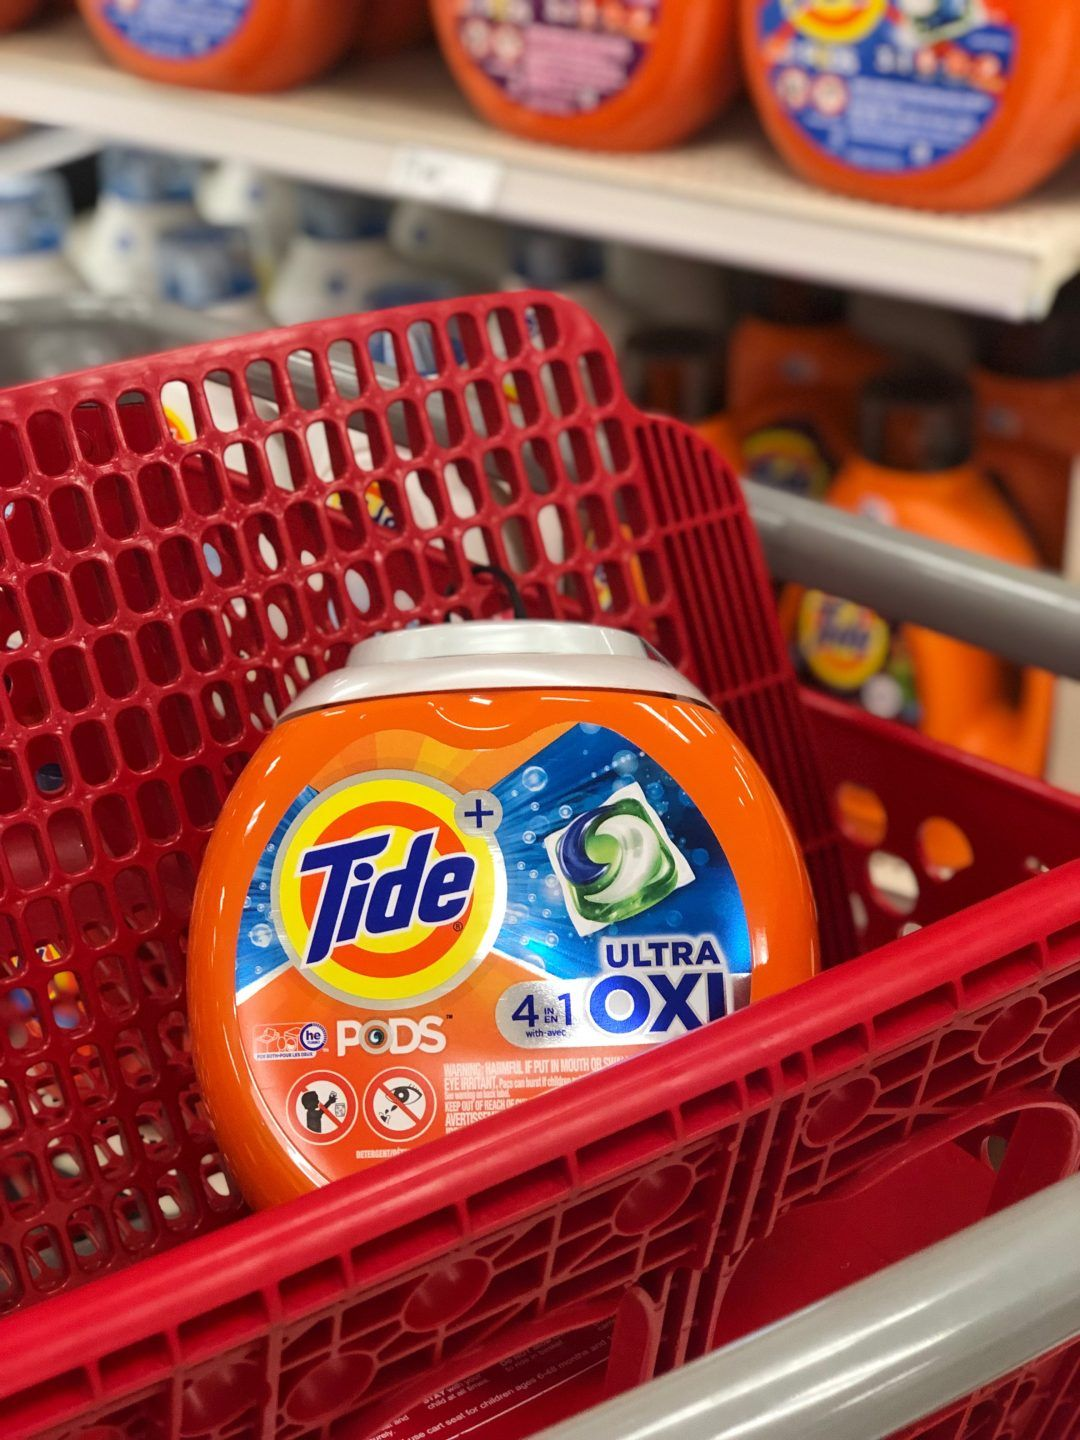 How To Get Big Coupons On The Tide Laundry Detergents You May Be